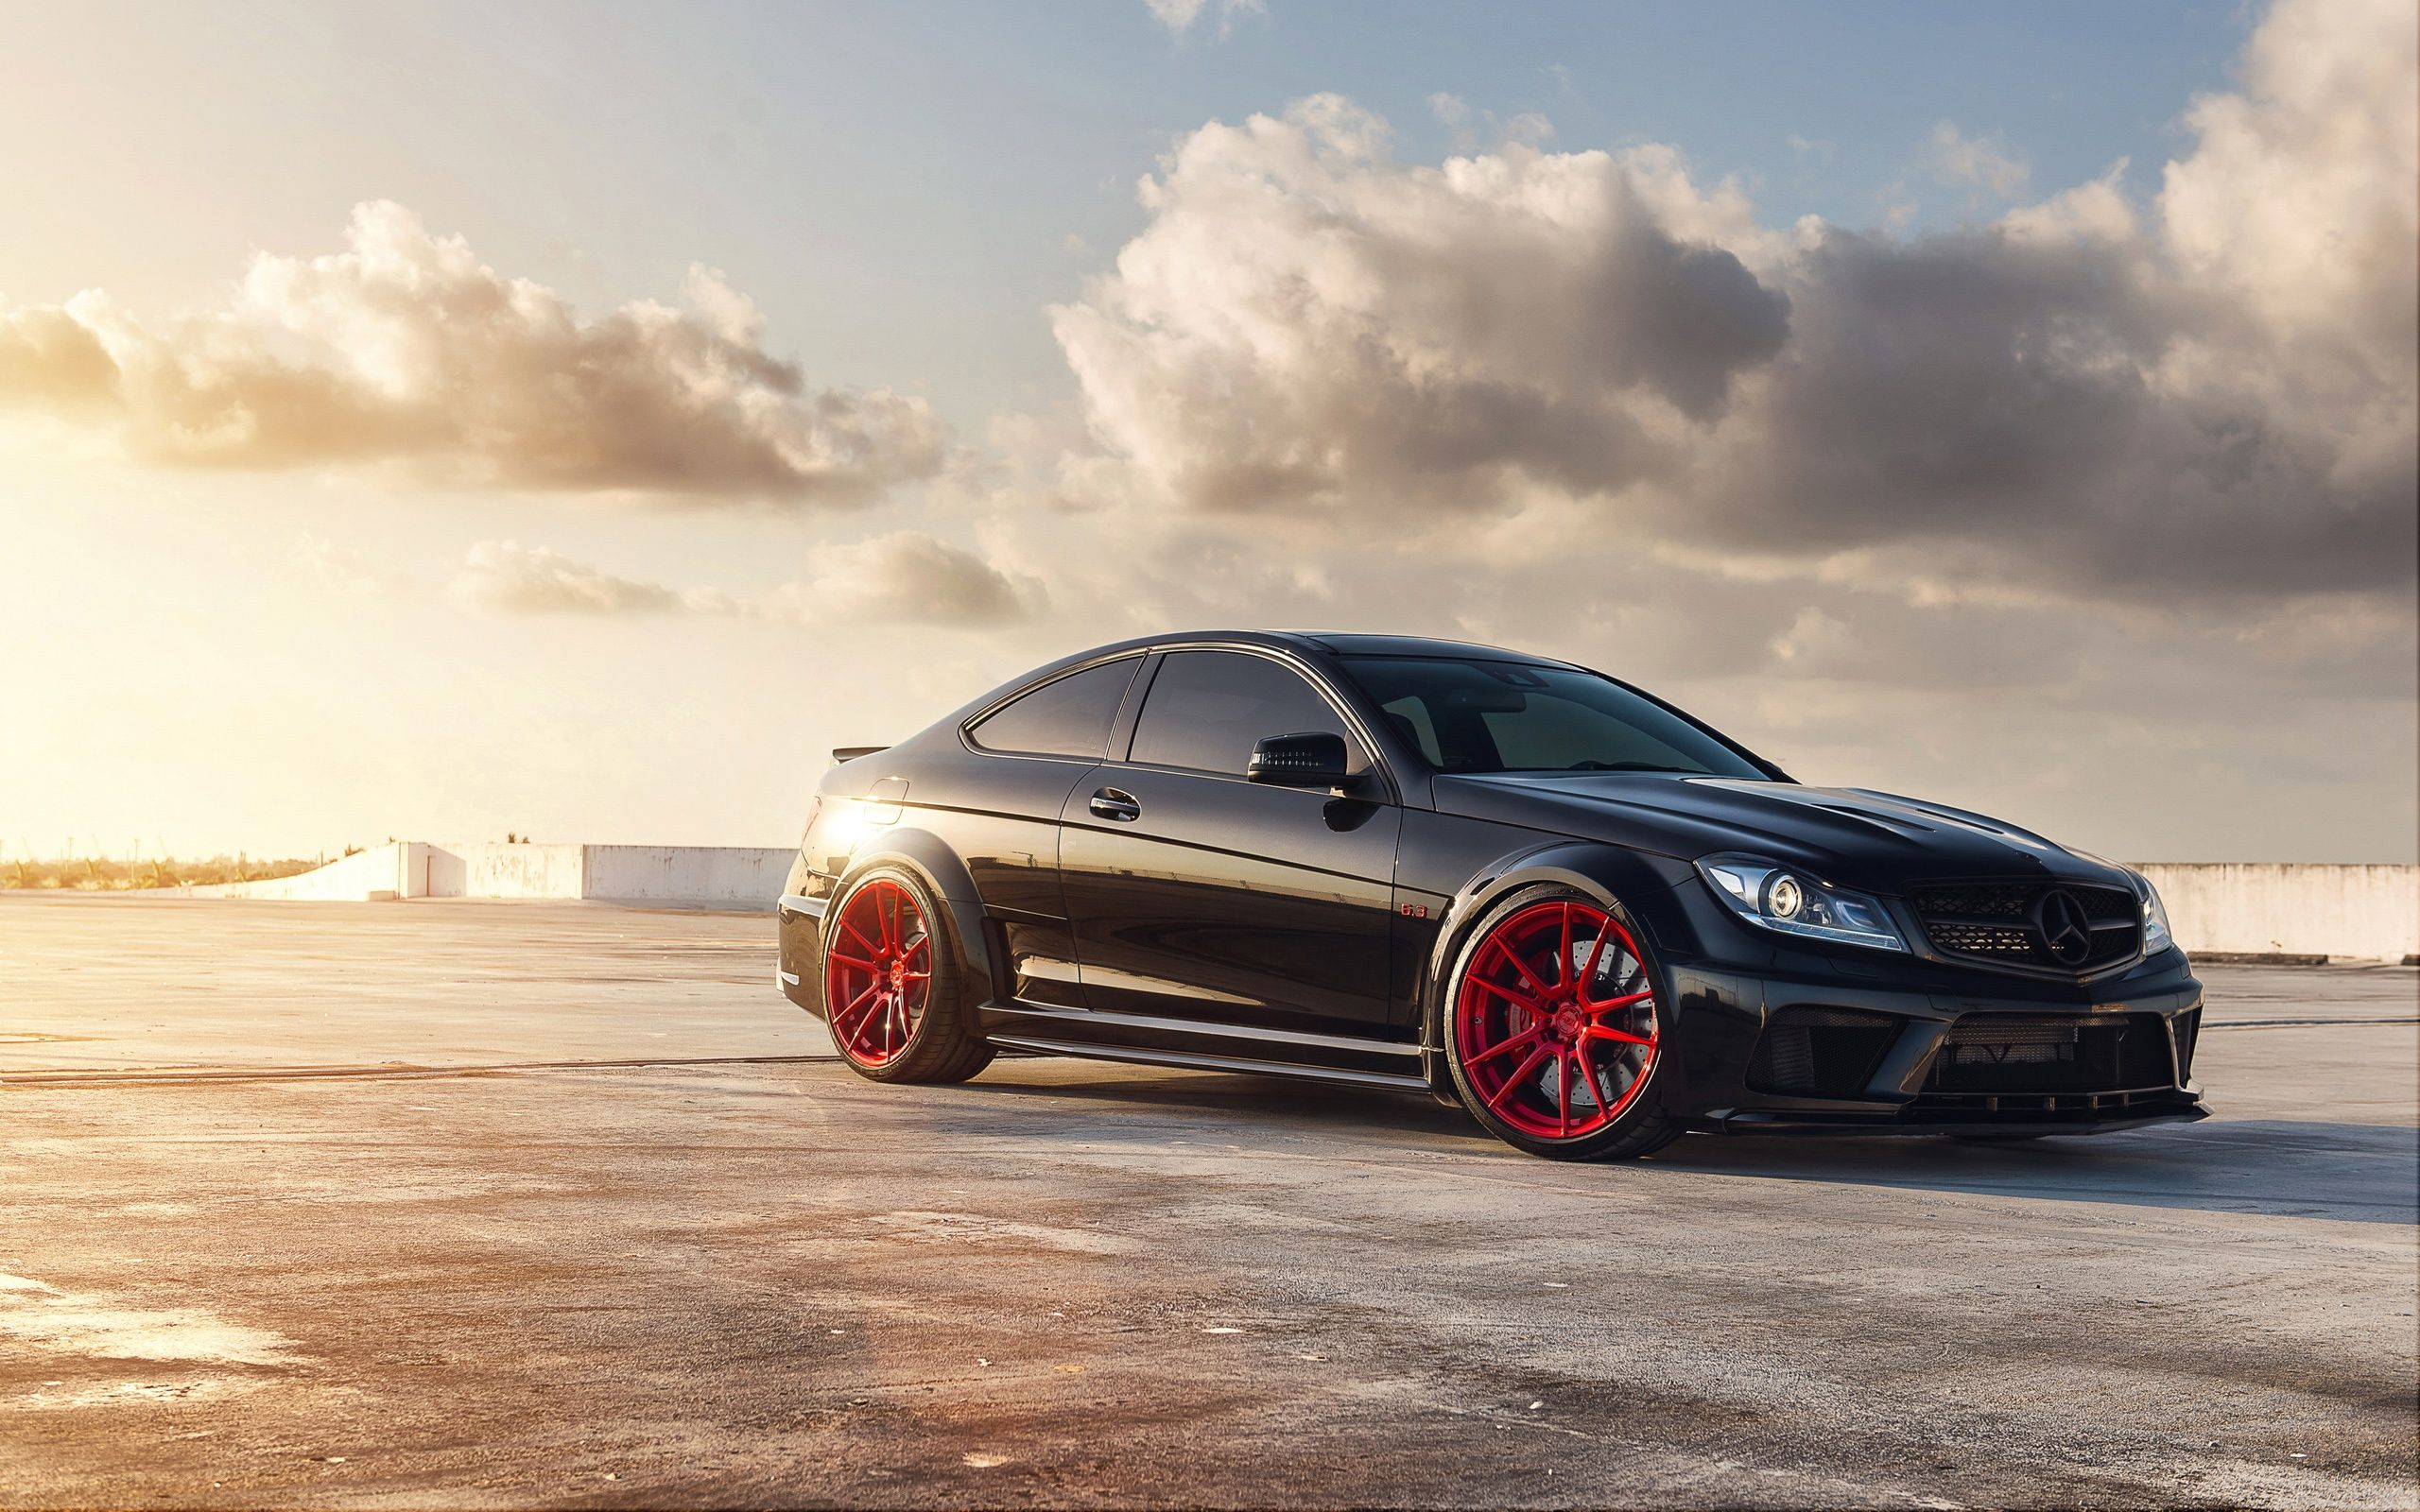 Mercedes Benz C63 Amg Exclusive Wallpapers Hd Wallpapers